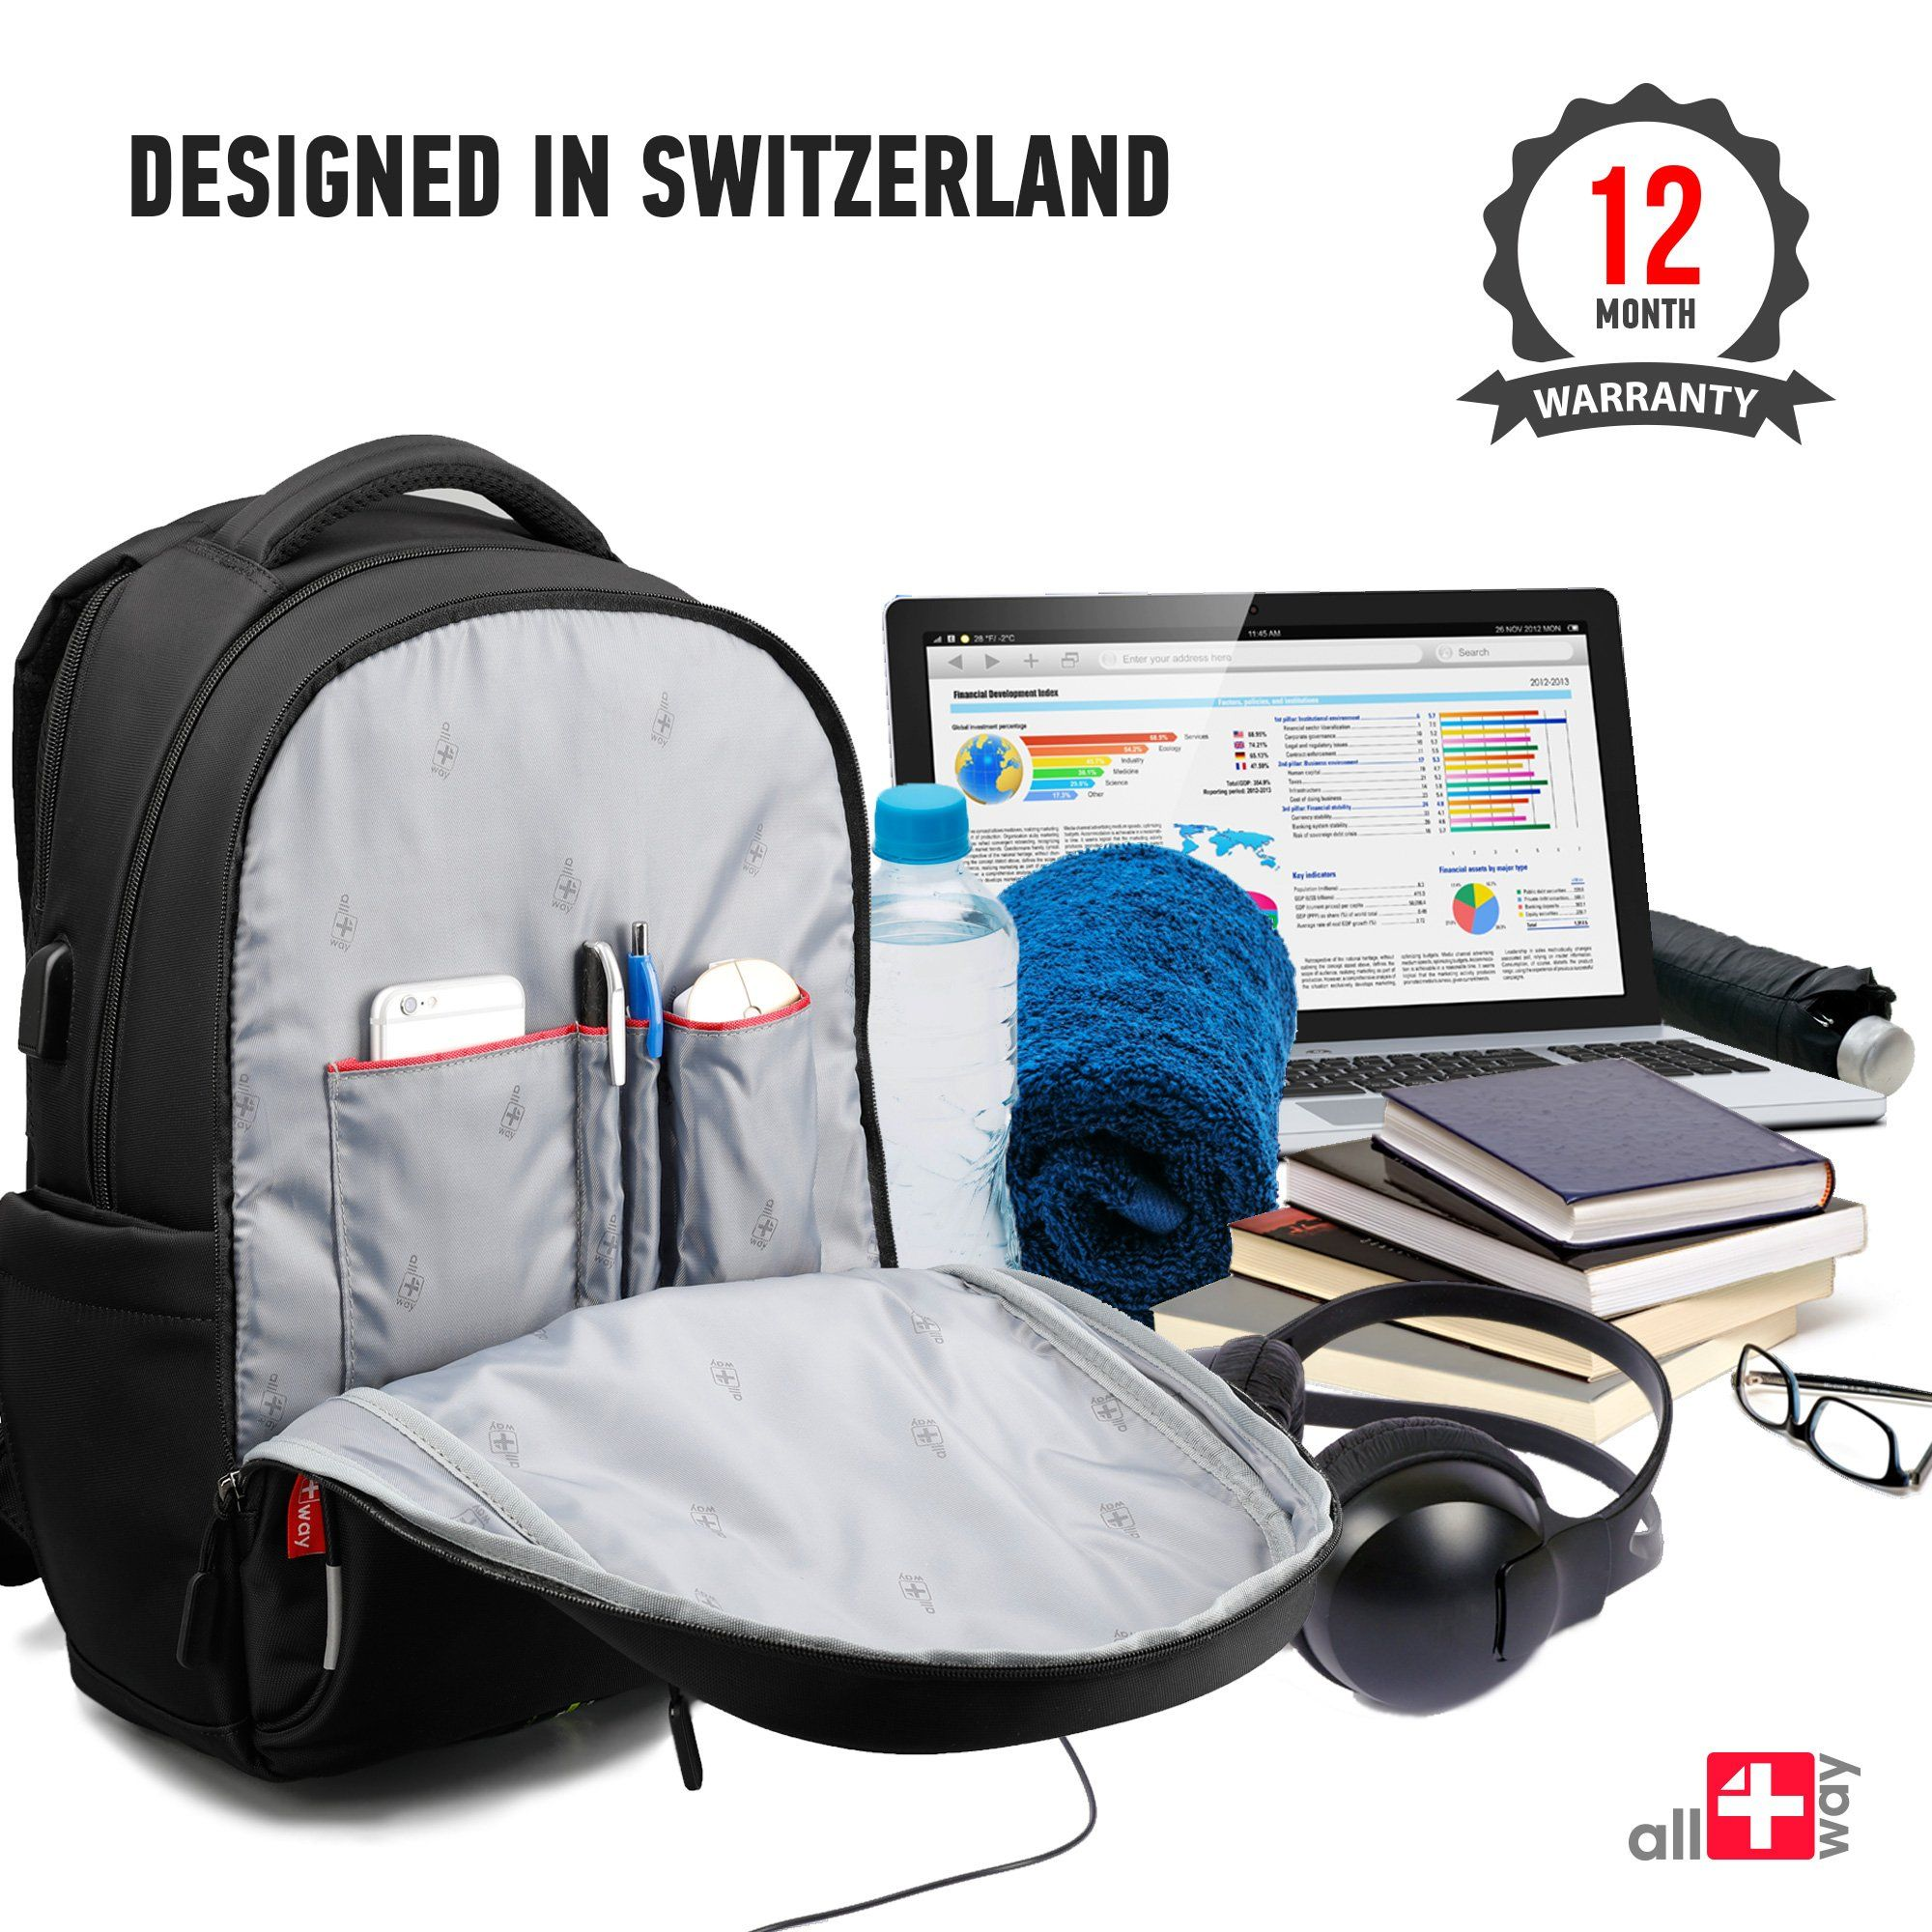 81e4d6266f Laptop Backpack Anti Theft Backpack Waterproof Rain Cover SWISS Design RFID  Blocking USB Charging Port Business College Travel School Backpack Black ...